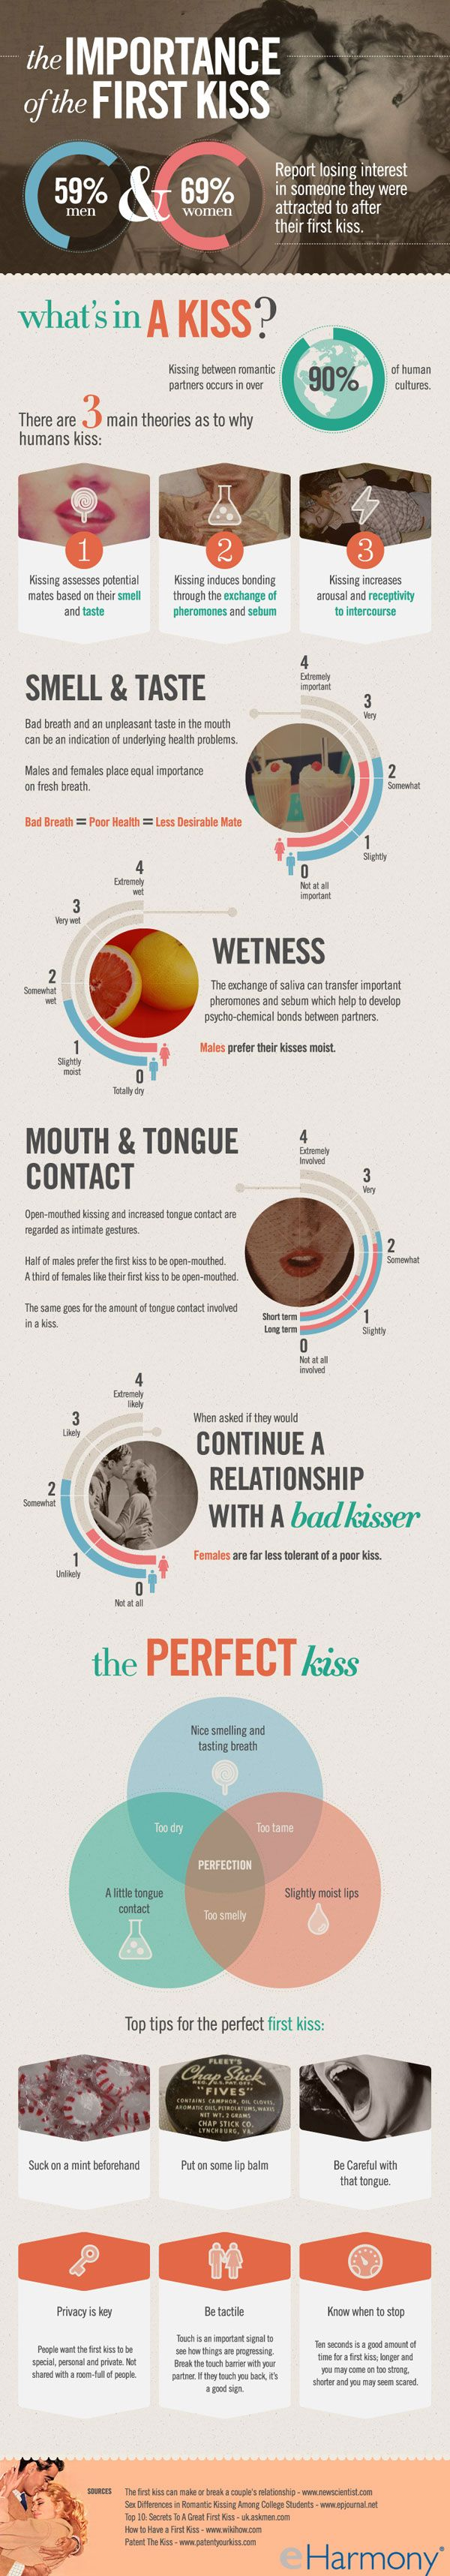 importance-of-the-first-kiss